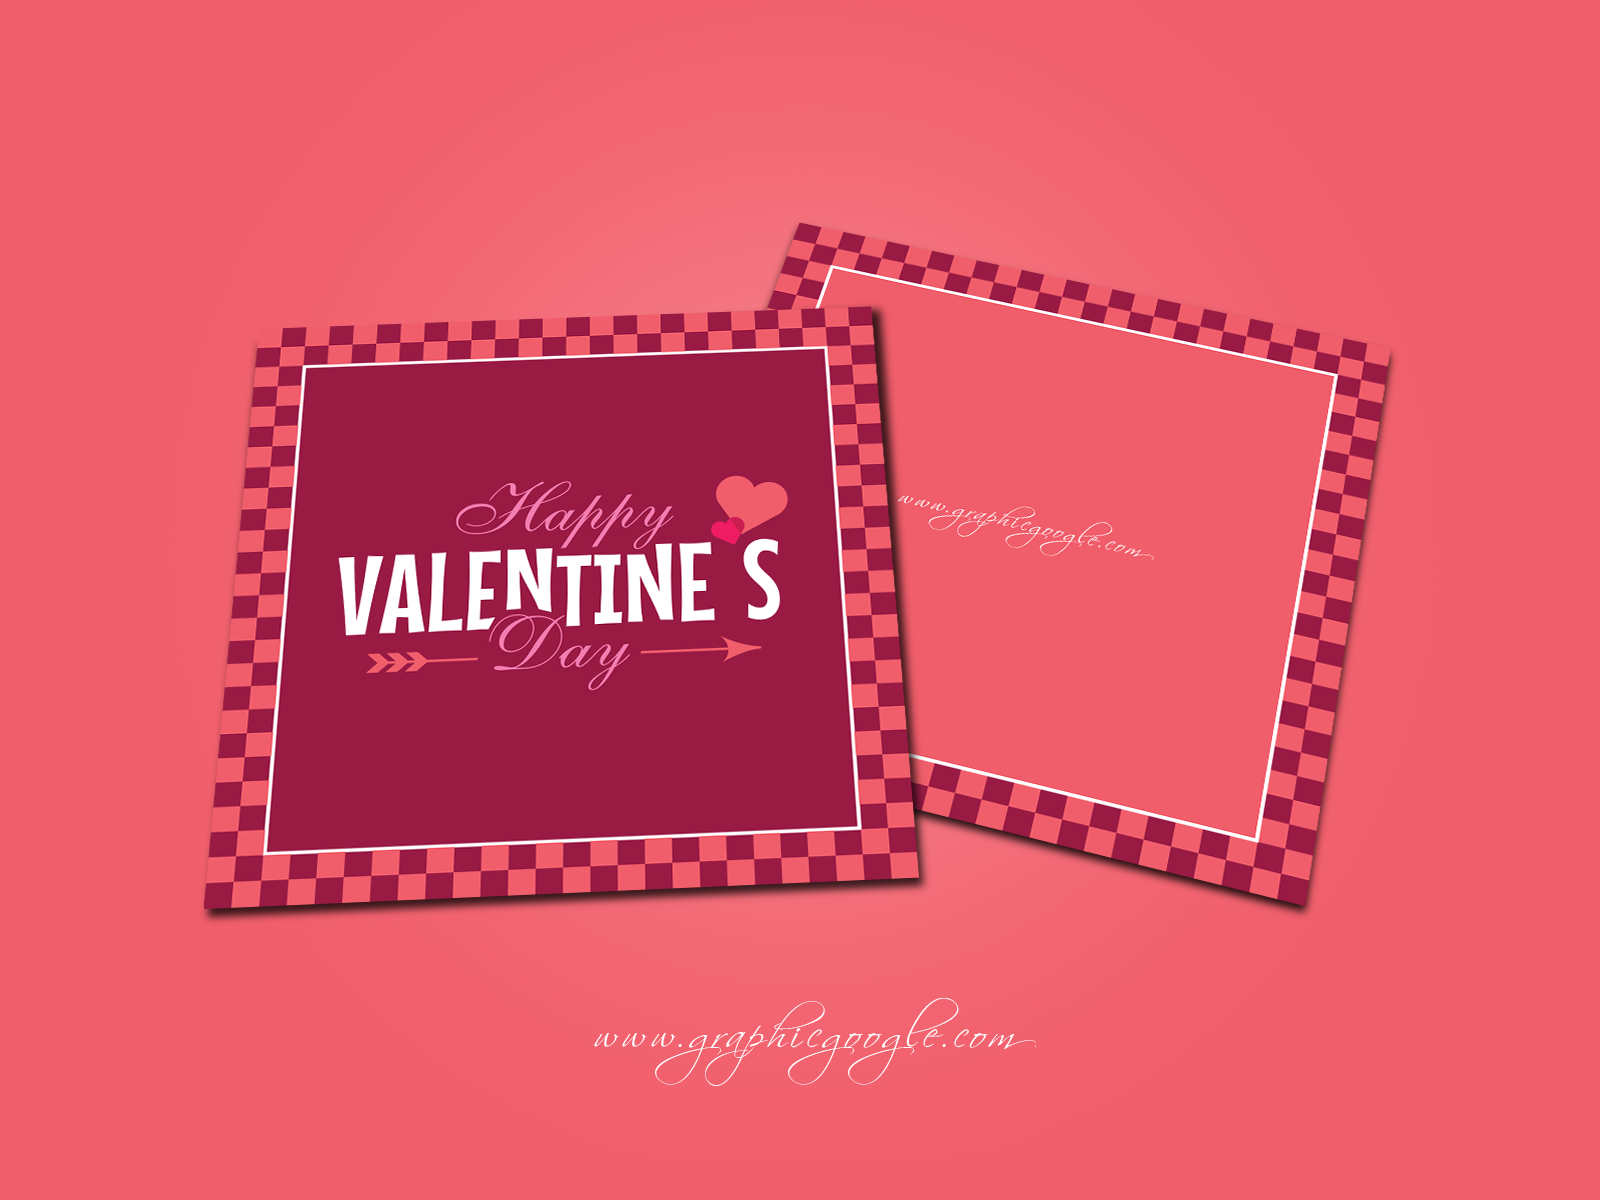 Free-Happy-Valentine's-Day-Greeting-Card-Design-Template